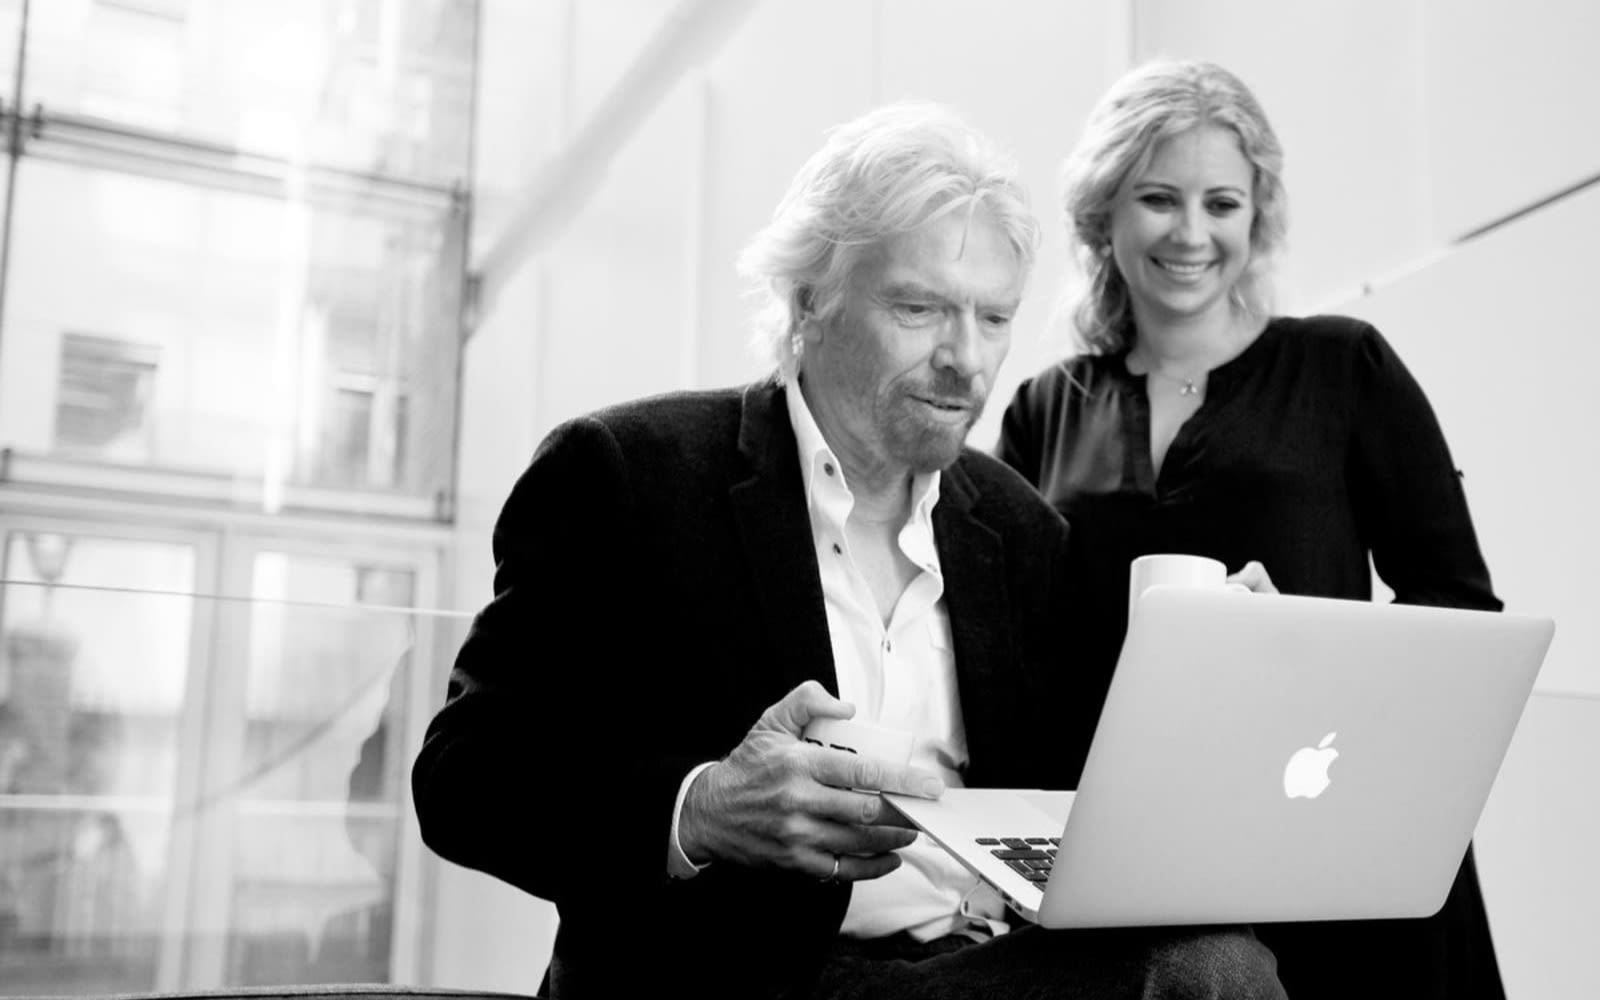 Black and White photo of Richard Branson using a laptop with Holly Branson standing next to him looking over his shoulder at the screen